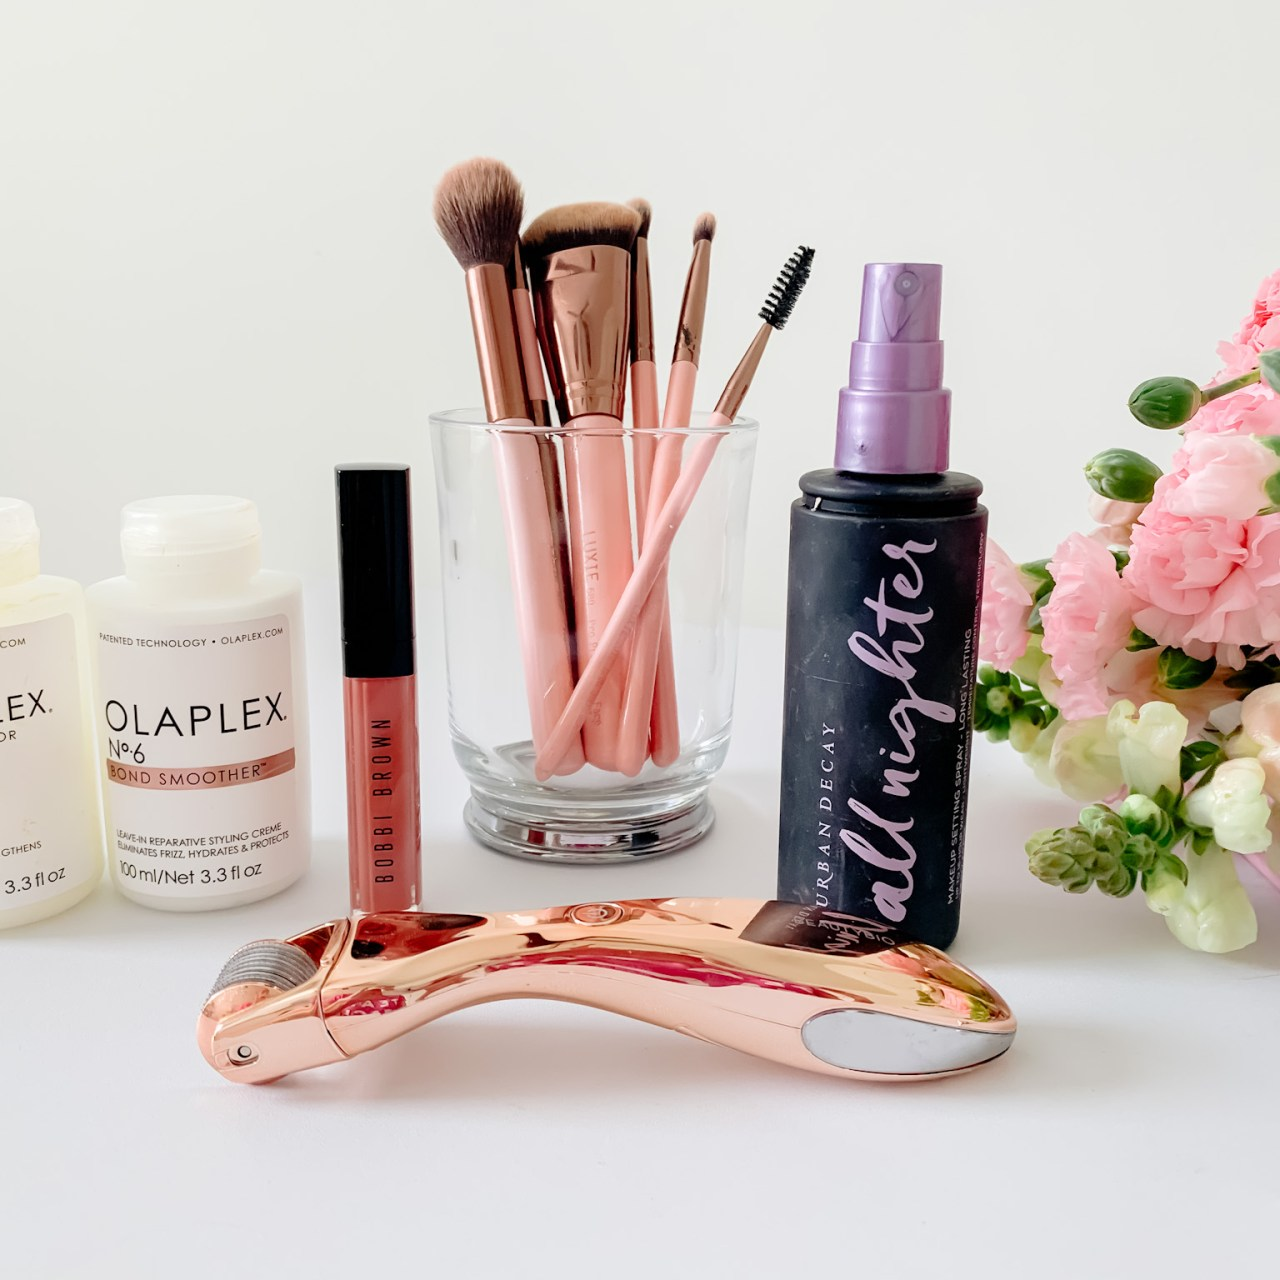 NORDSTROM SALE 2020 BEAUTY PICKS